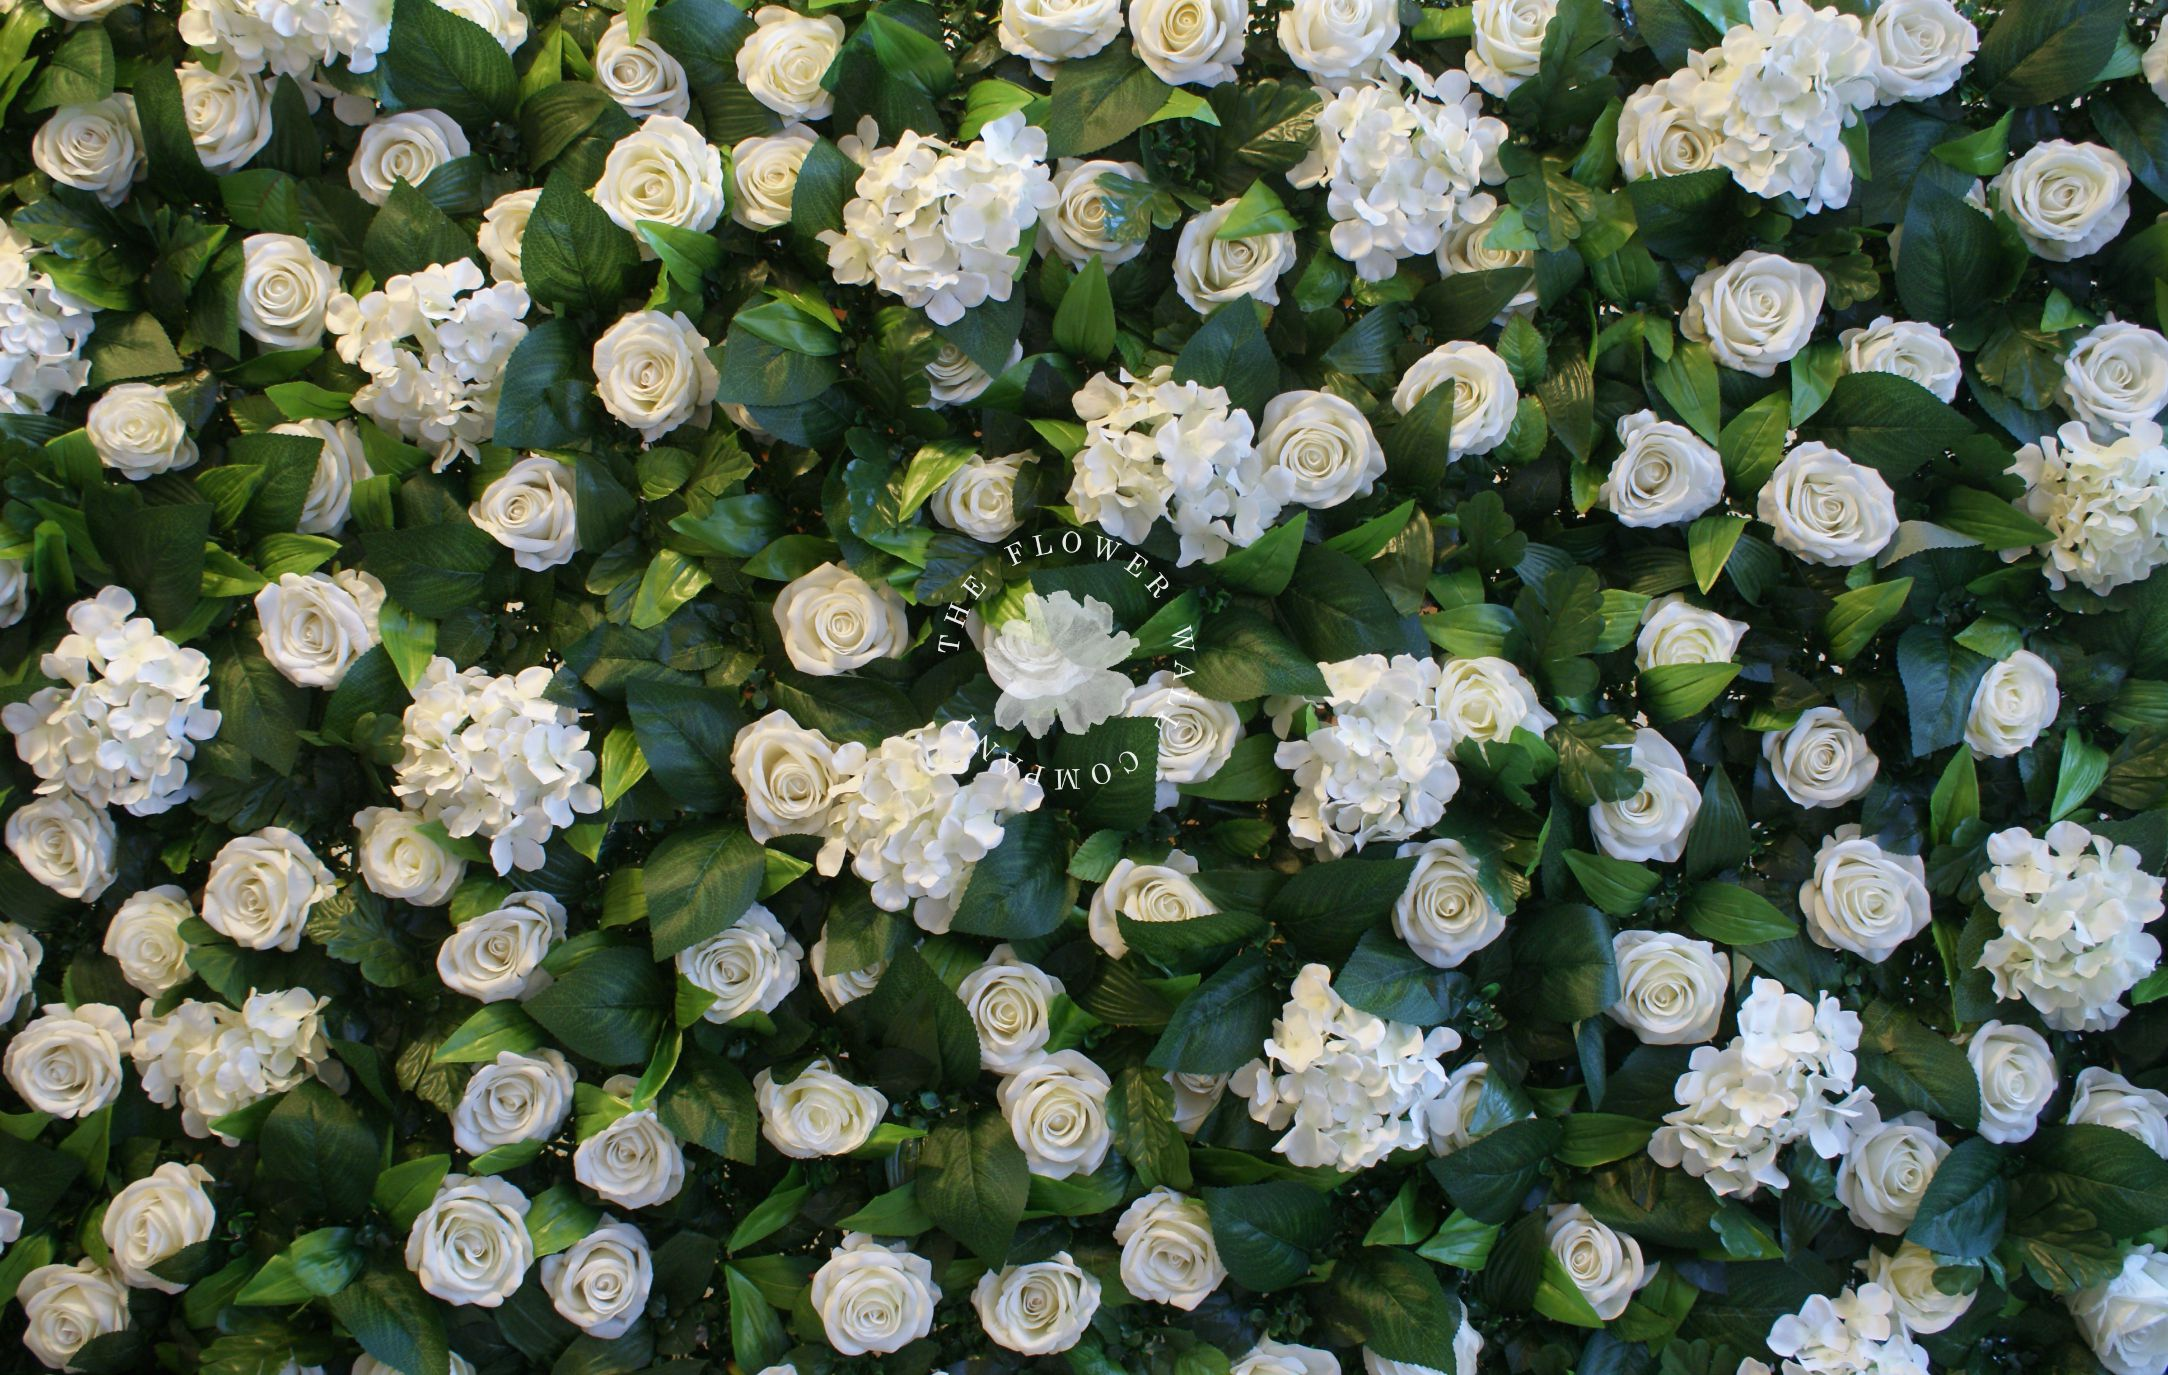 Flower Wall Flower Wall Inspiration Archives The Flower Wall Company